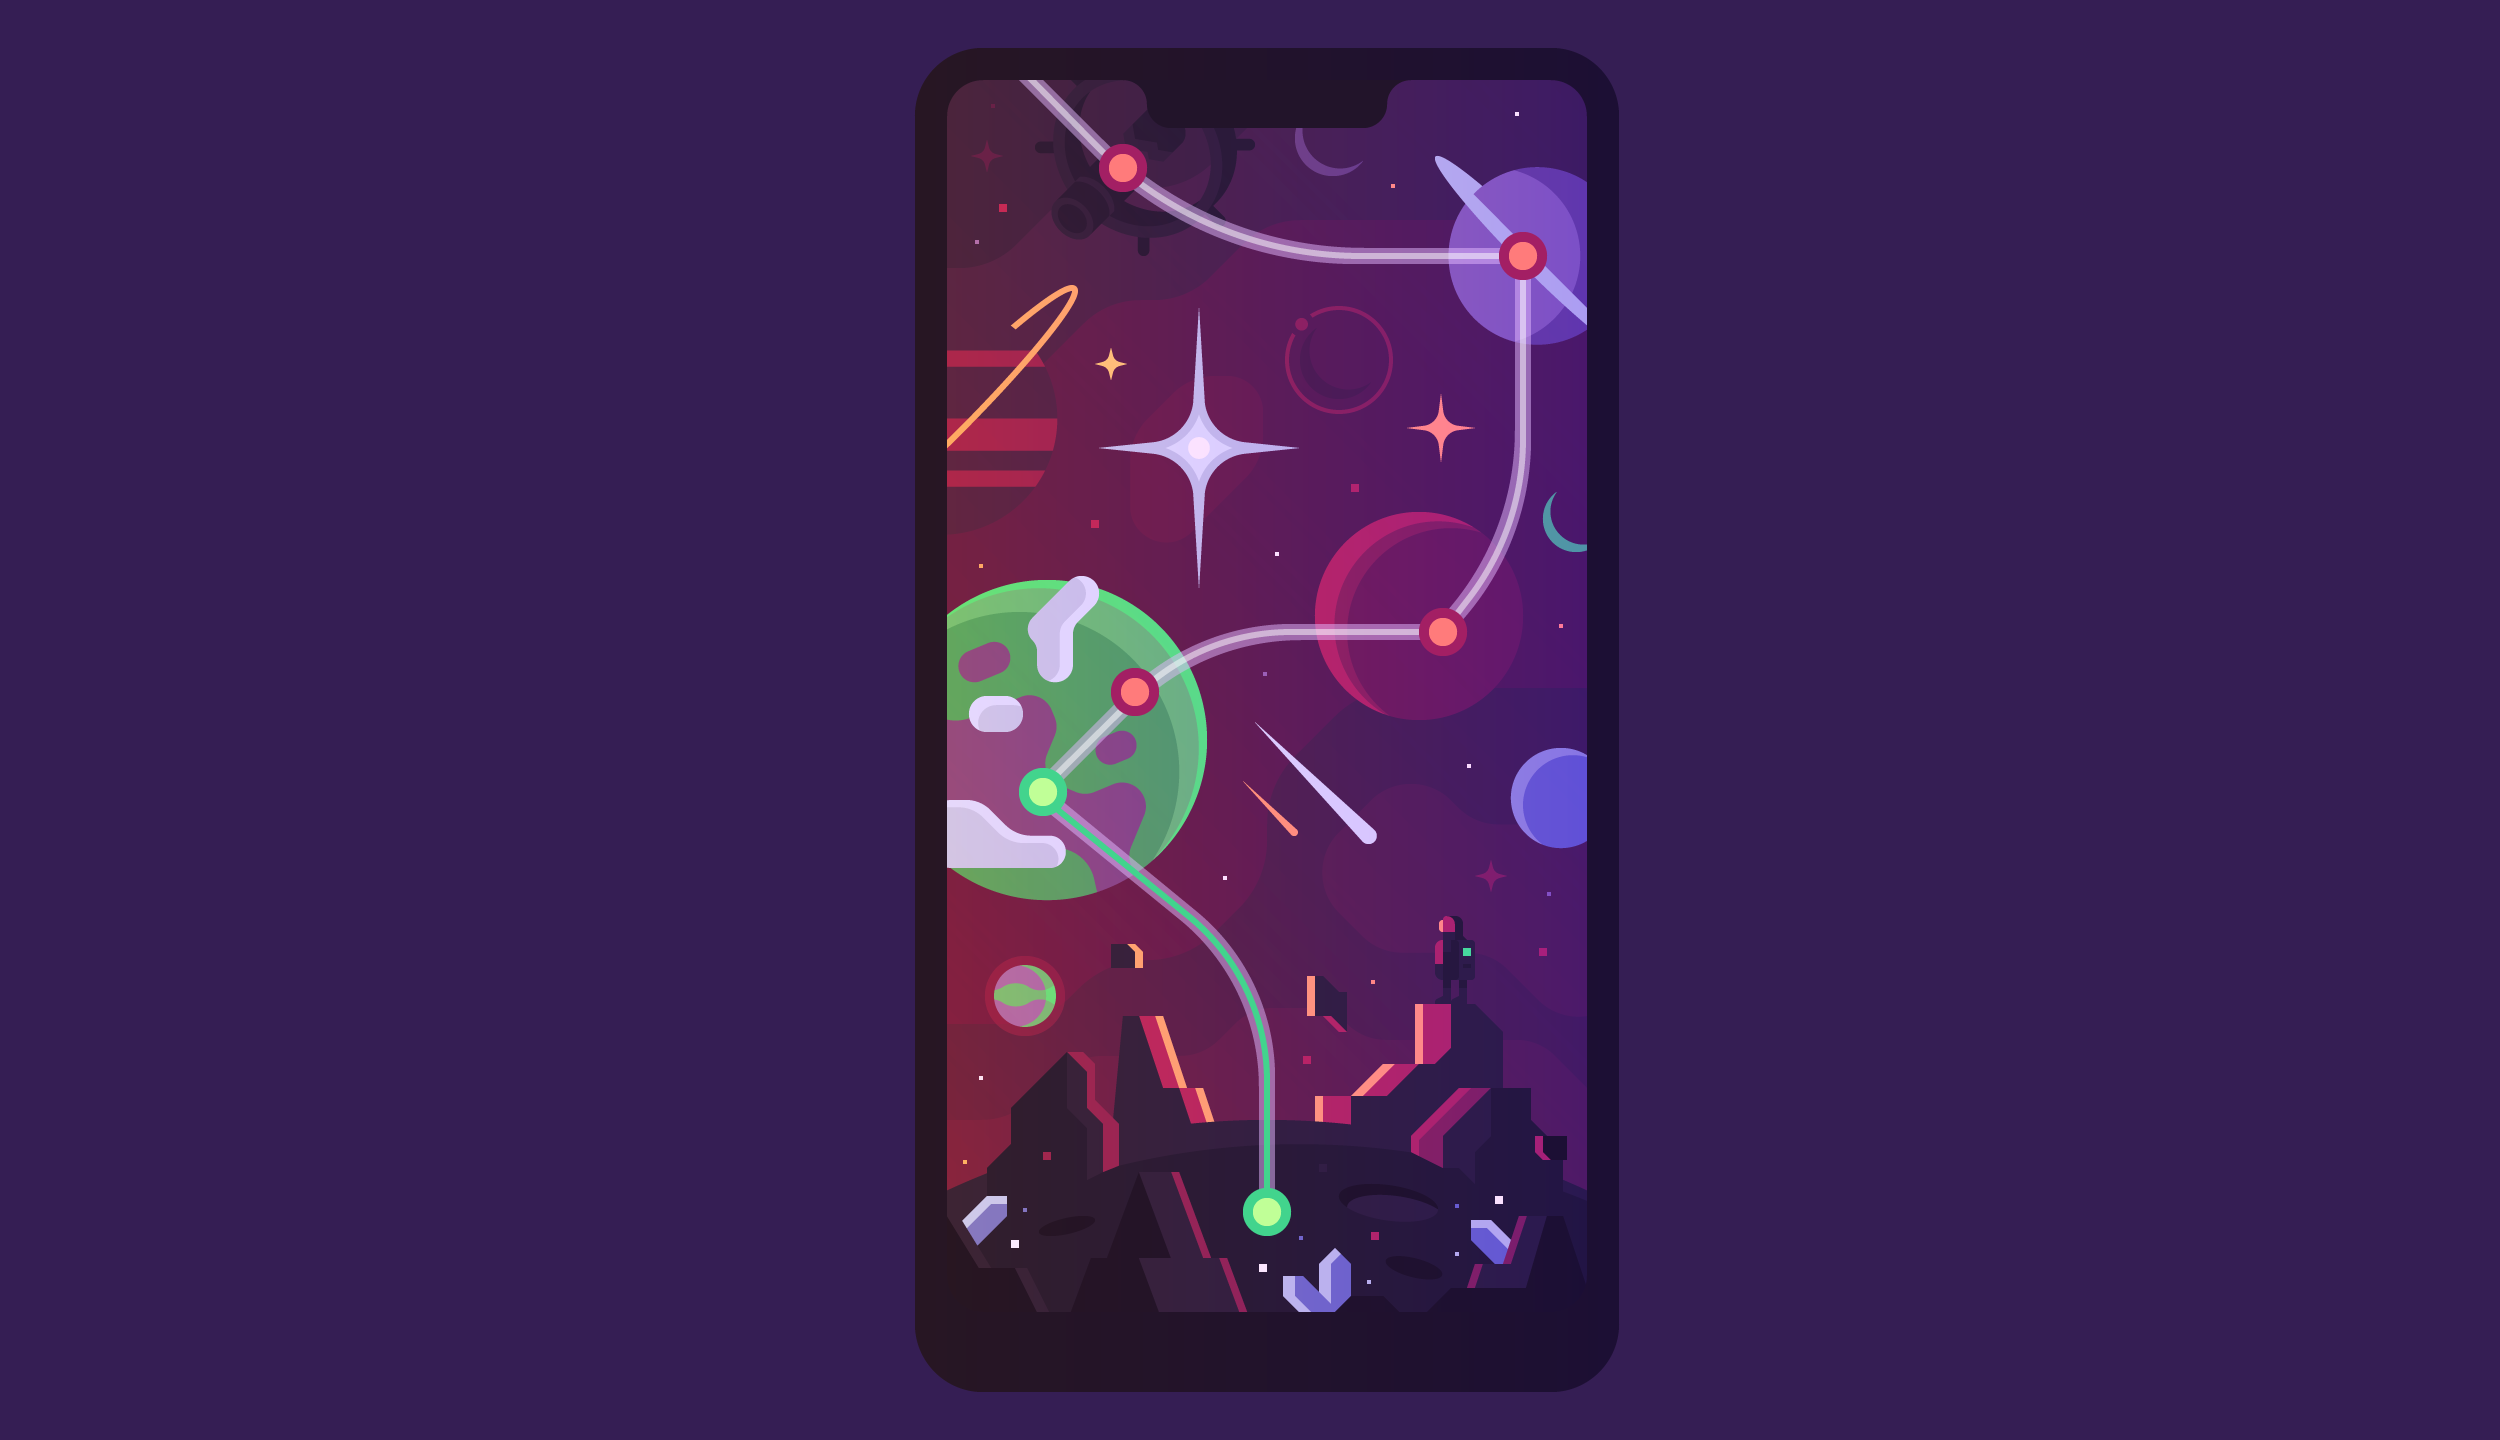 This design shows how the player would navigate to different planets, space stations and more.